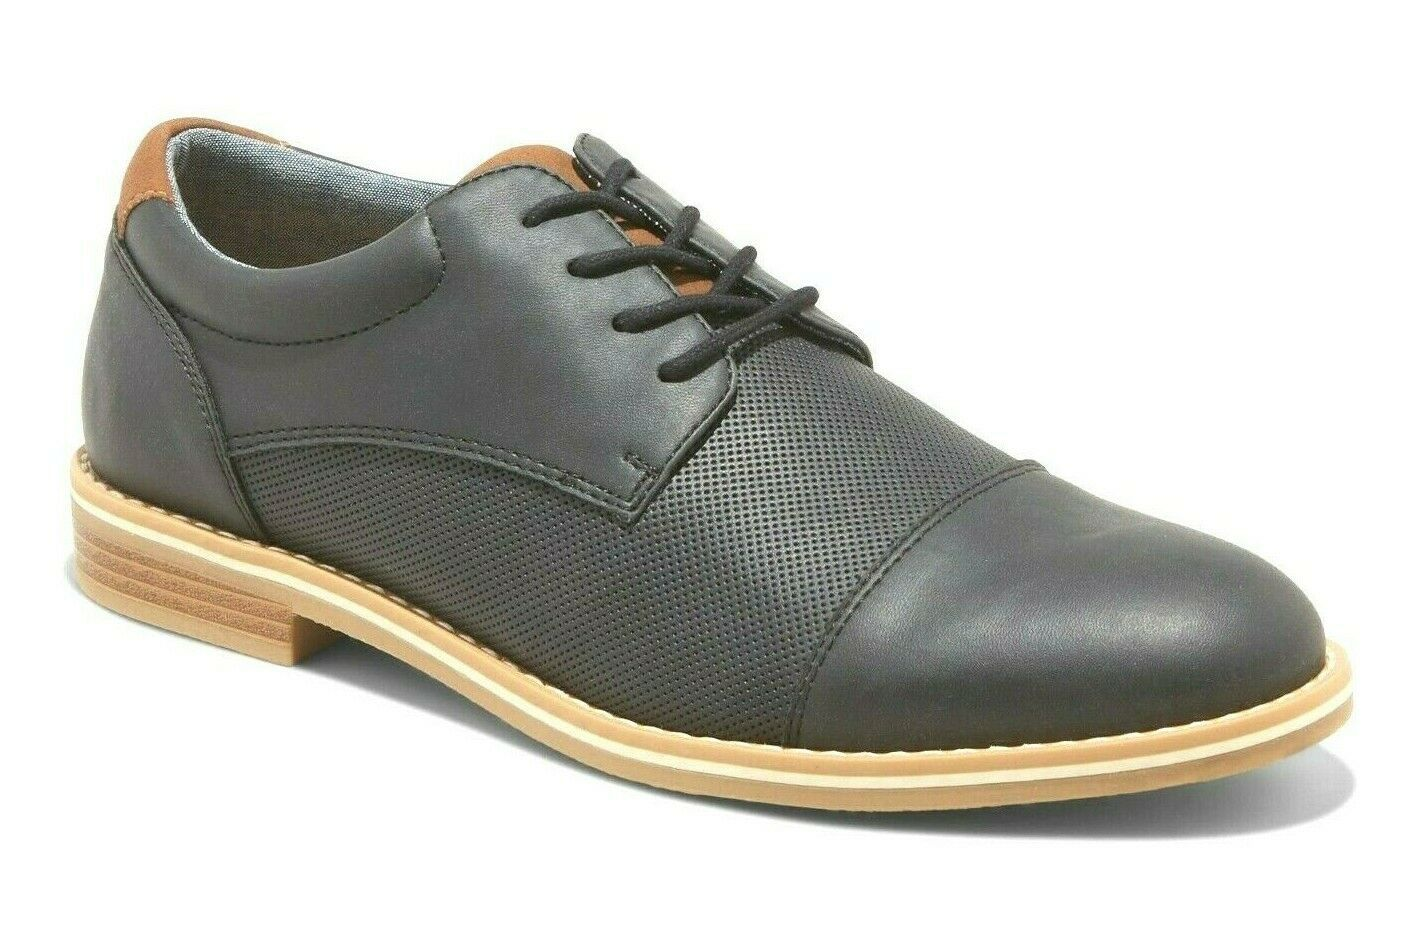 Goodfellow & Co. Black Casual Jarmarcus Lace Up Loafer Shoes Sz 10.5 US NWT